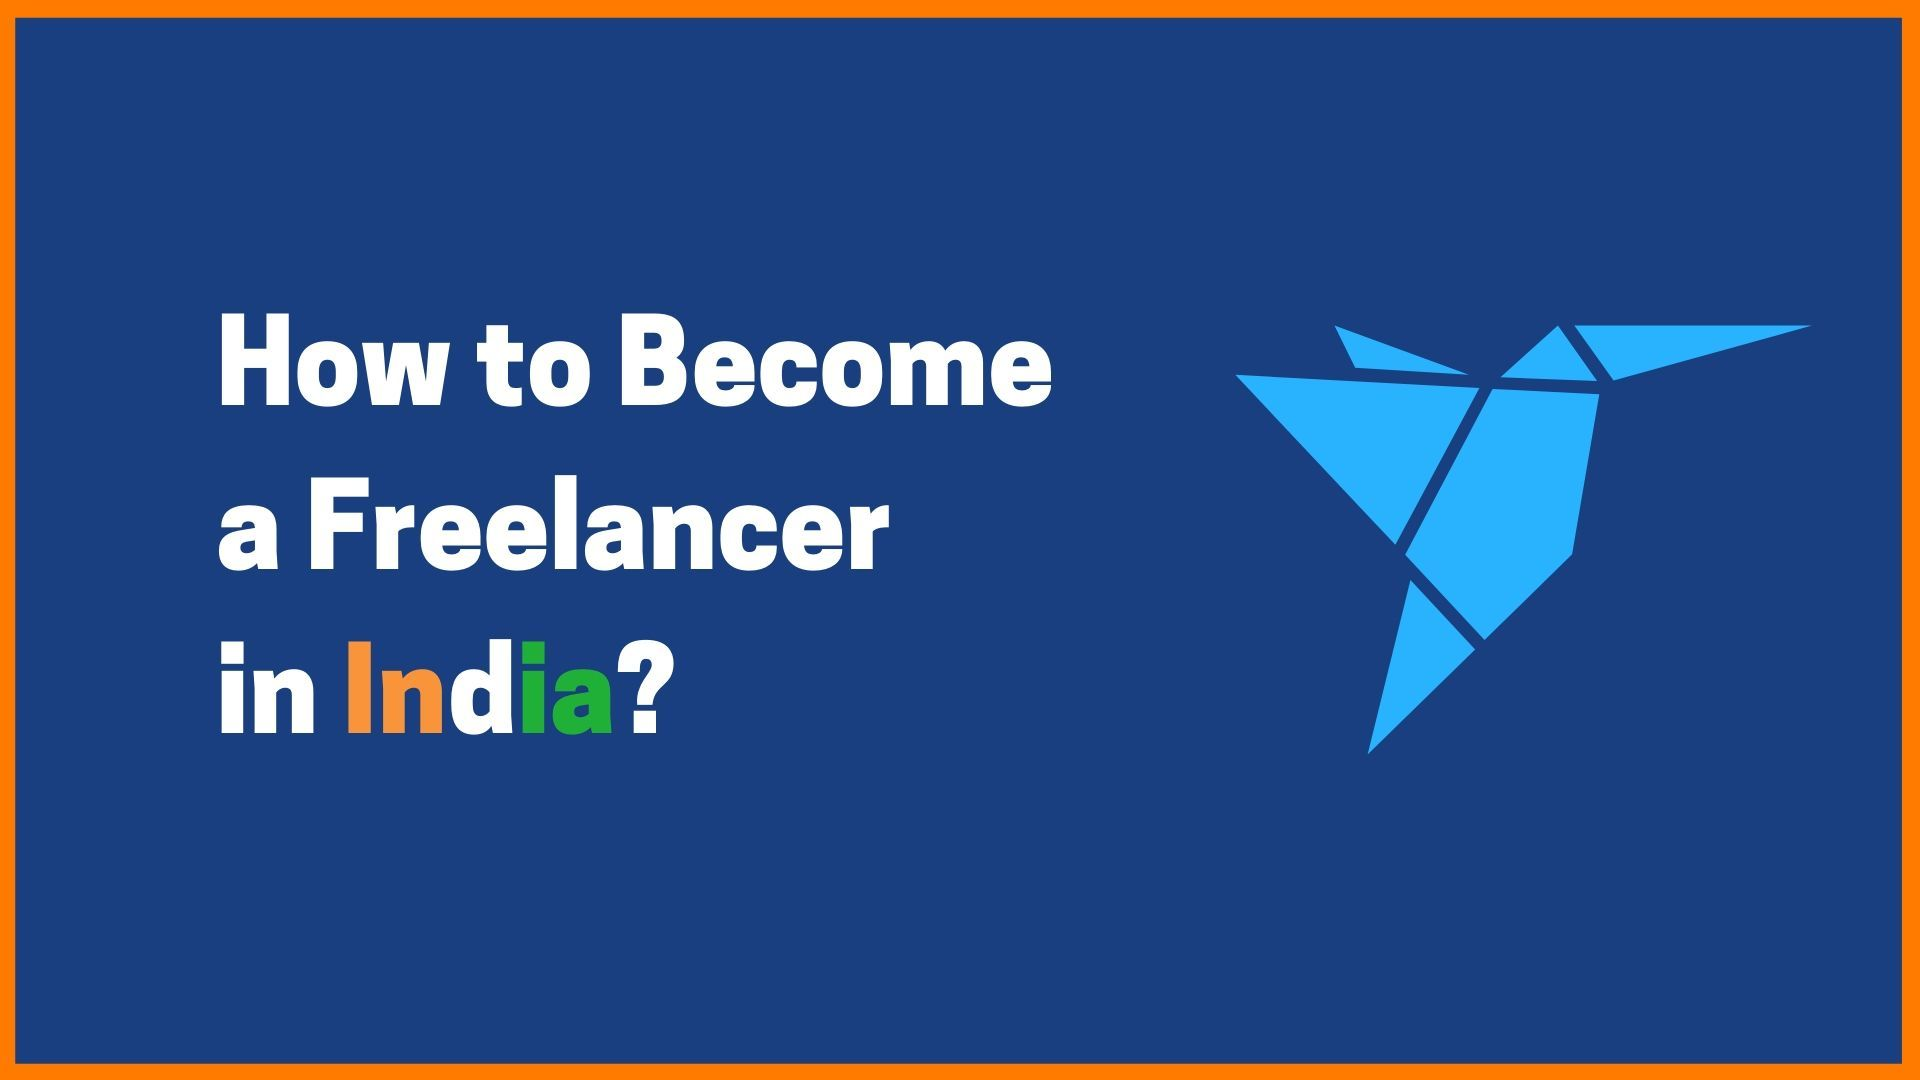 How to become A Freelancer in India?